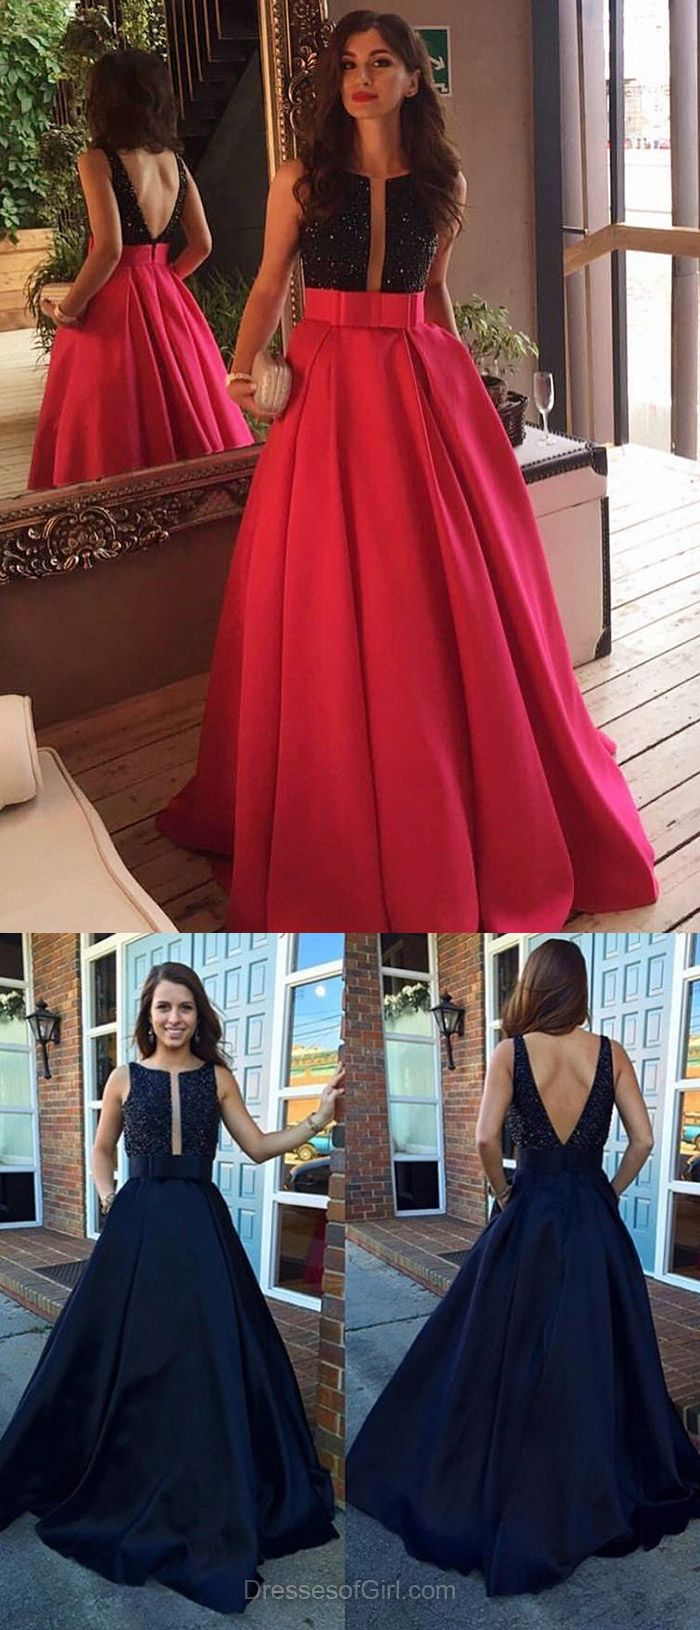 Red backless sexy prom dresses princess scoop neck formal evening